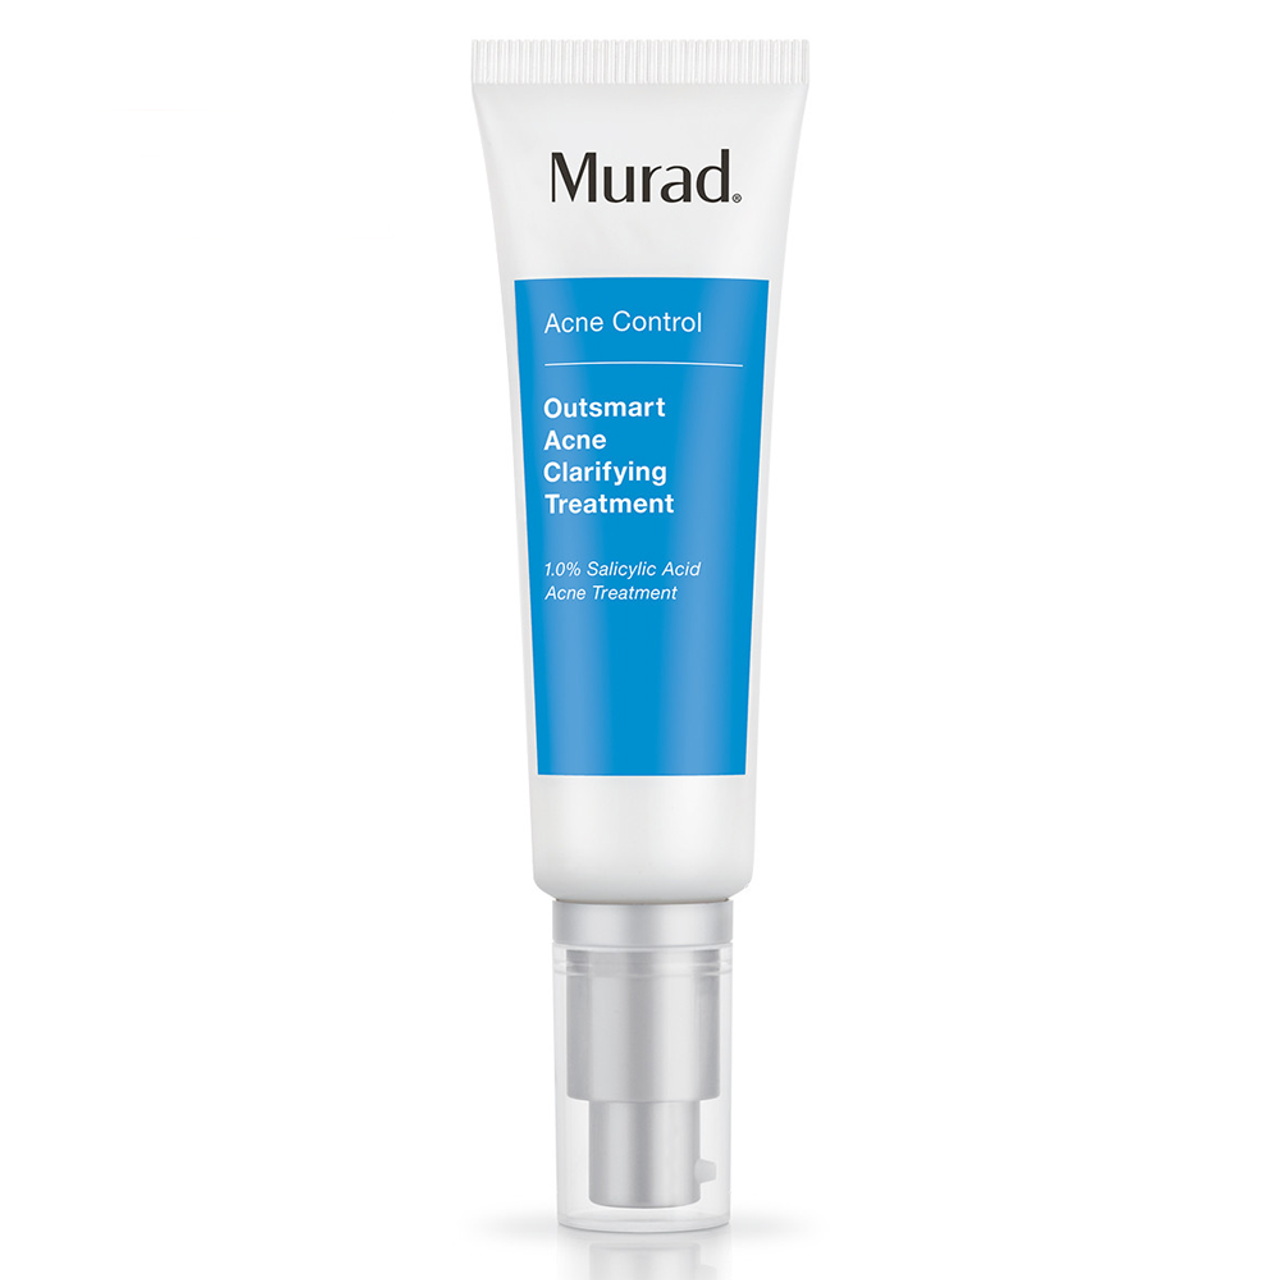 Murad Acne Control Outsmart Acne Clarifying Treatment